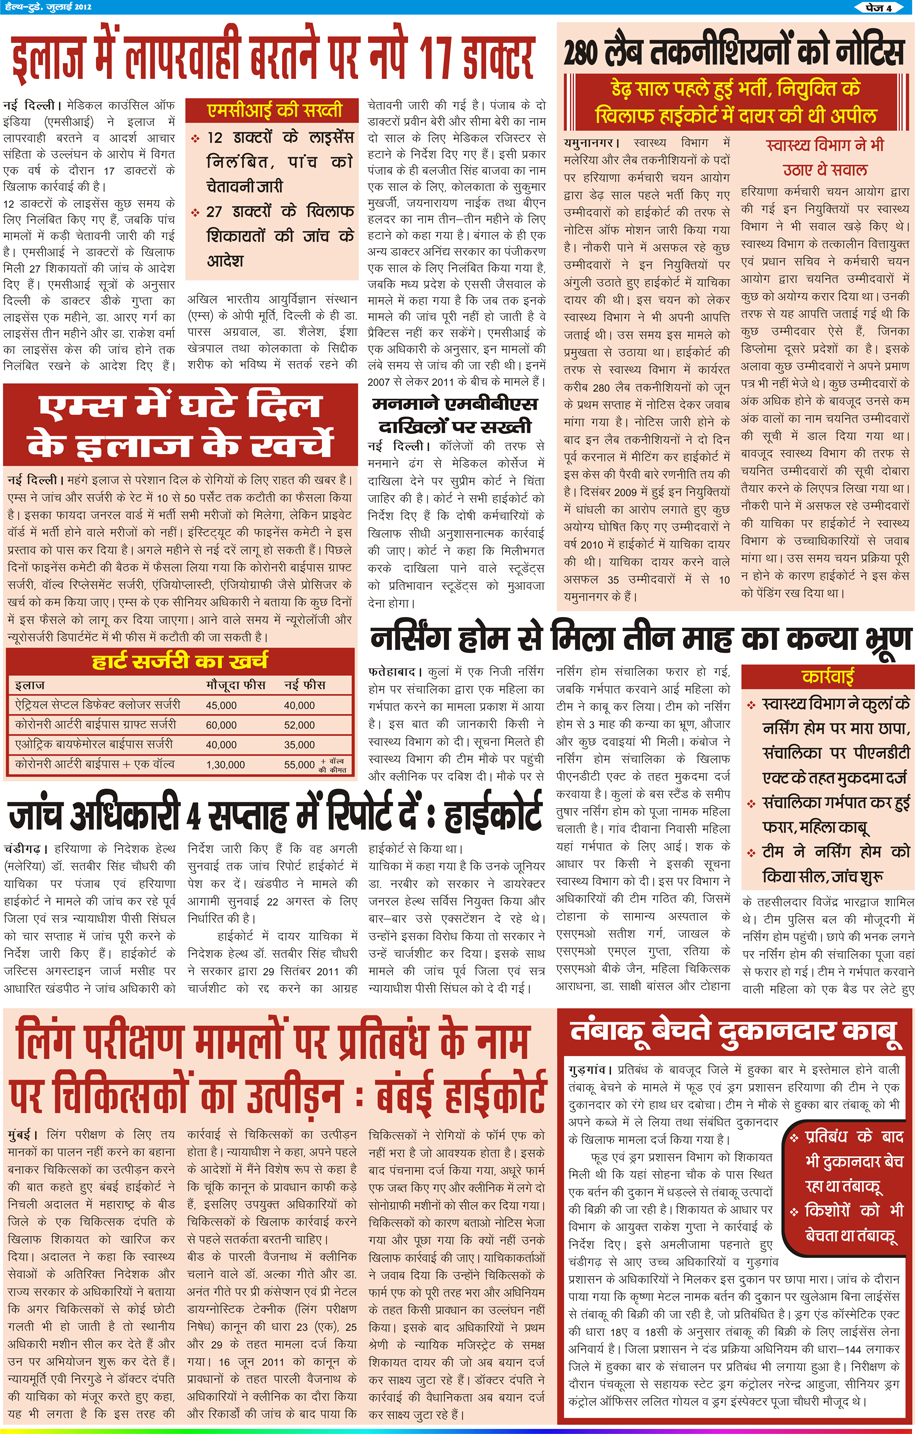 mci news license suspend medical pharma health article shiv shakti blood bank news sirsa